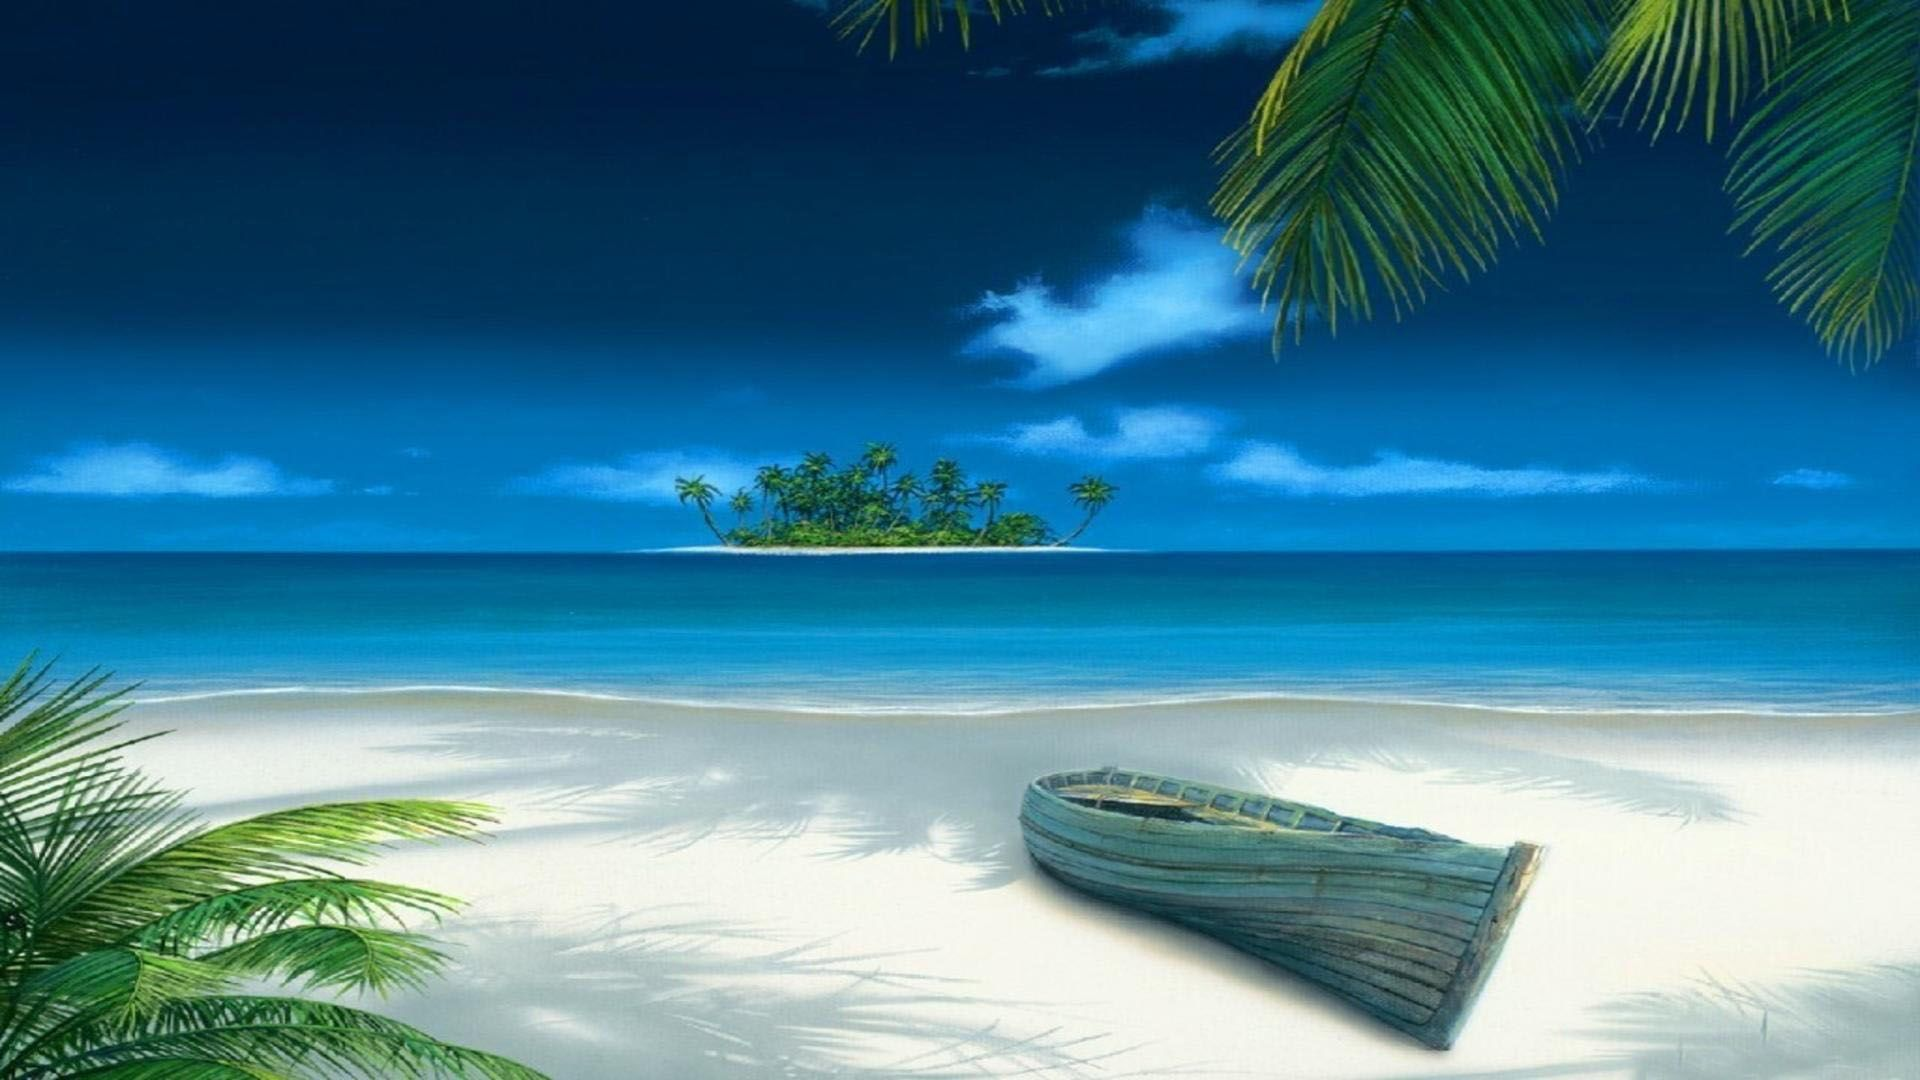 Pin By Haydee Prats On From The Sea Beach Wallpaper Beach Graphics Nature Wallpaper